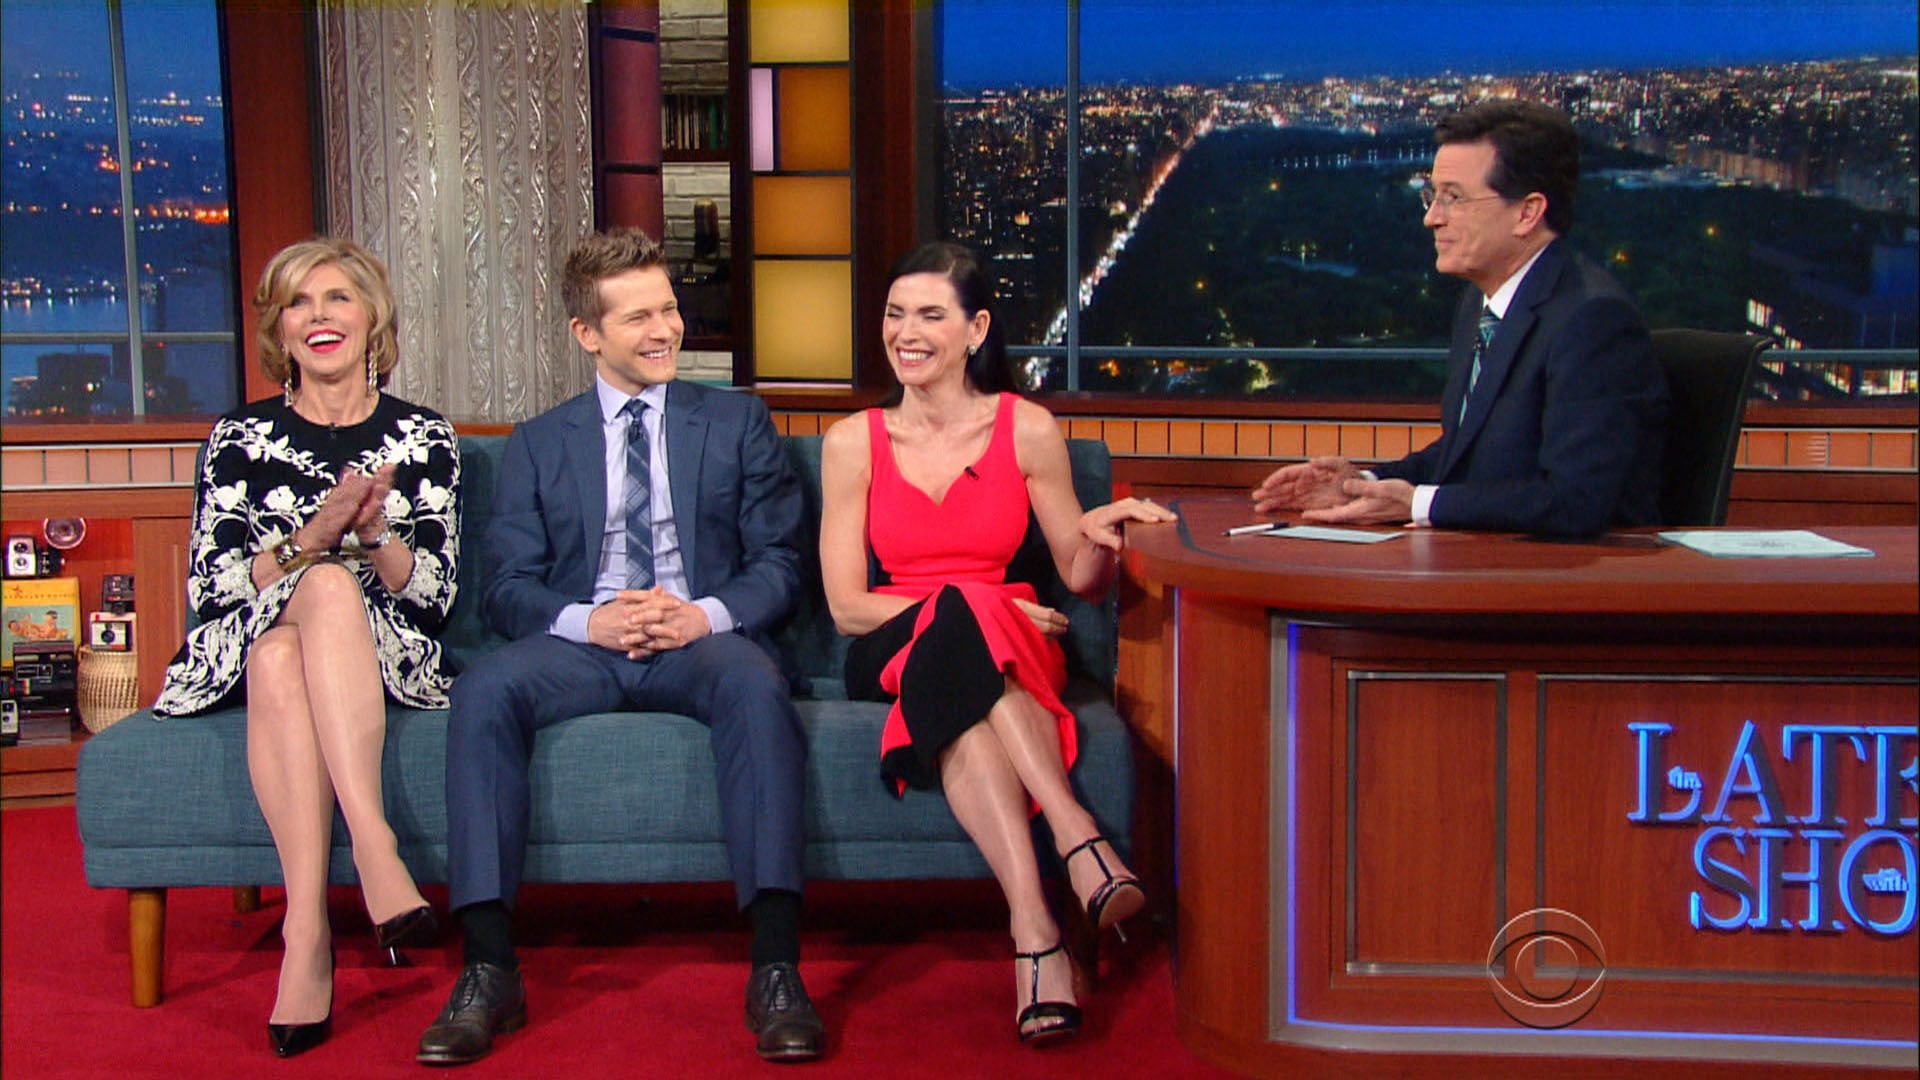 The Late Show with Stephen Colbert Season 1 :Episode 131  Julianna Margulies, Christine Baranski, Matt Czuchry, Hank Azaria, Phil Knight